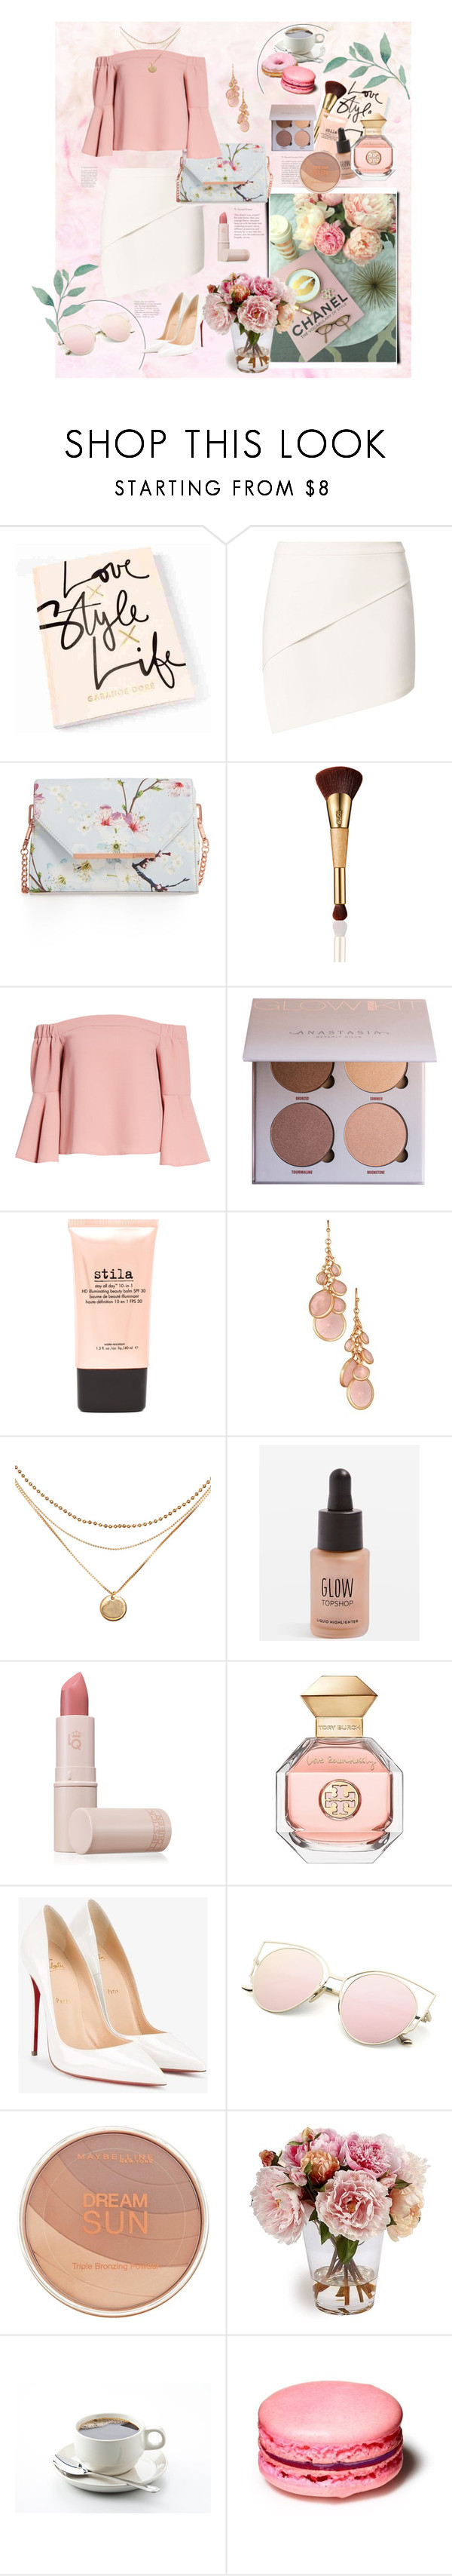 """Untitled #200"" by etotnikzanyat on Polyvore featuring Michelle Mason, Ted Baker, tarte, Topshop, Stila, Avon, Lipstick Queen, Tory Burch, Christian Louboutin and Maybelline"